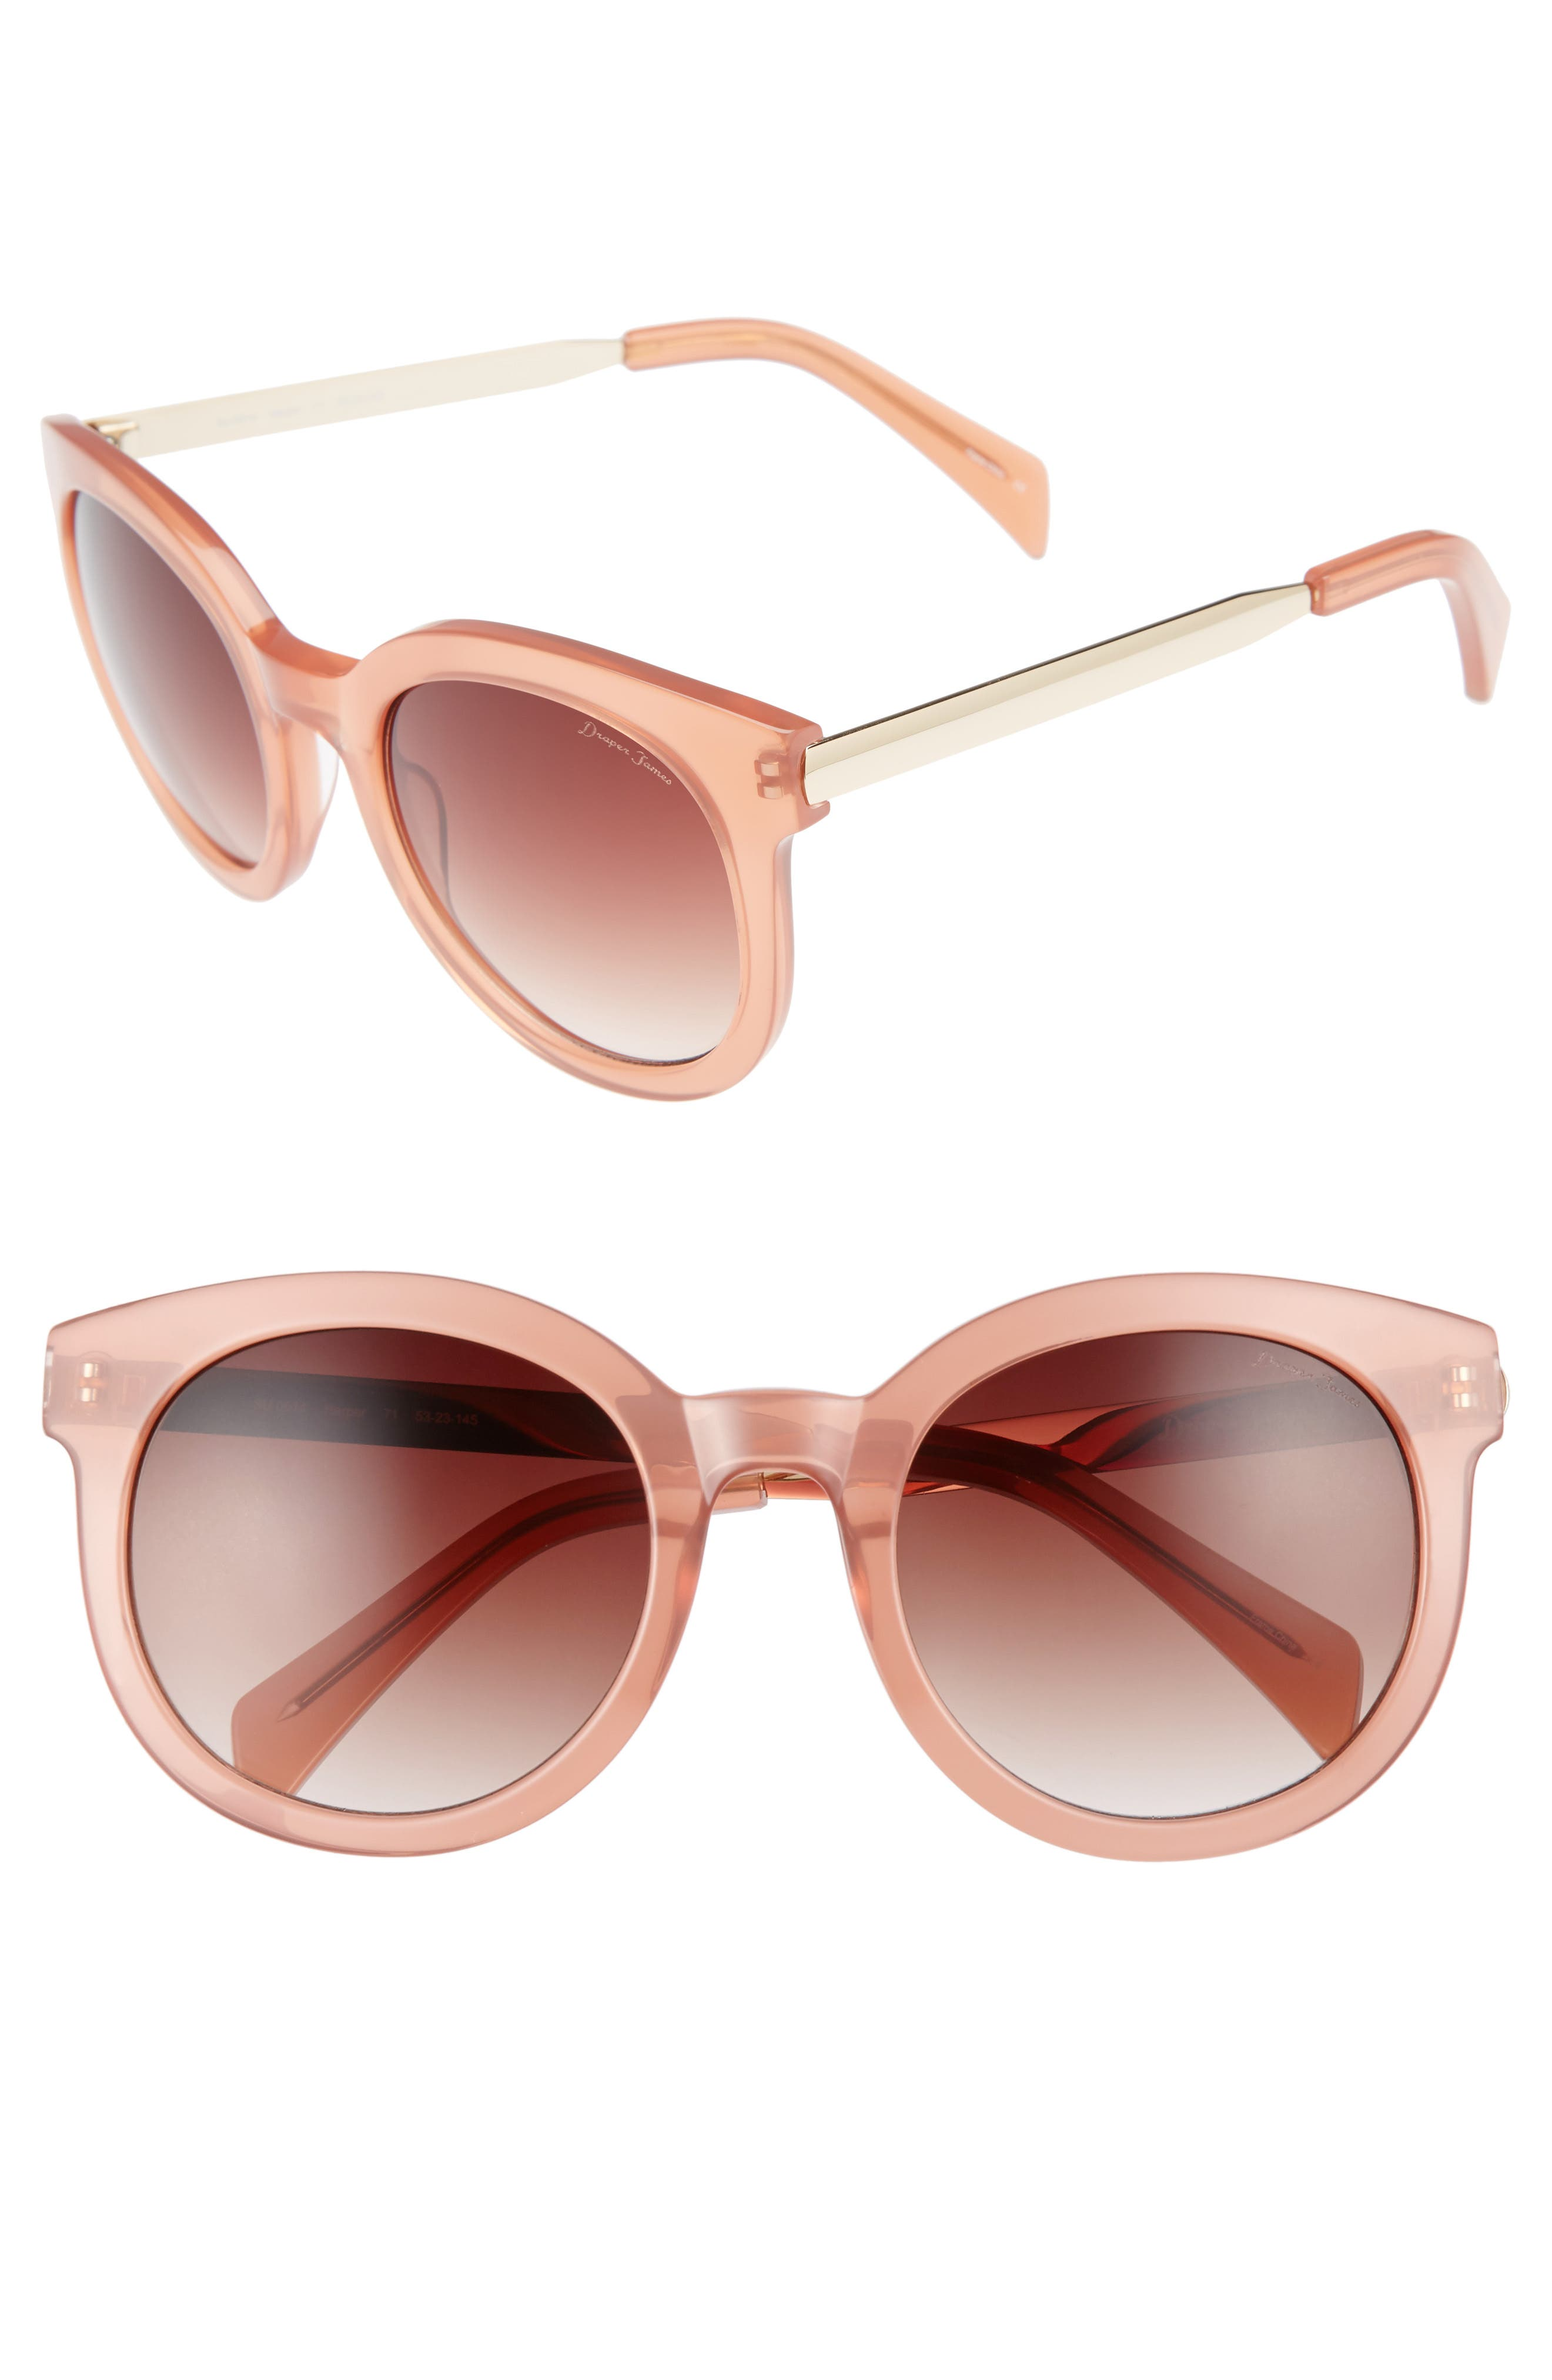 53mm Gradient Lens Round Sunglasses,                         Main,                         color, Pink